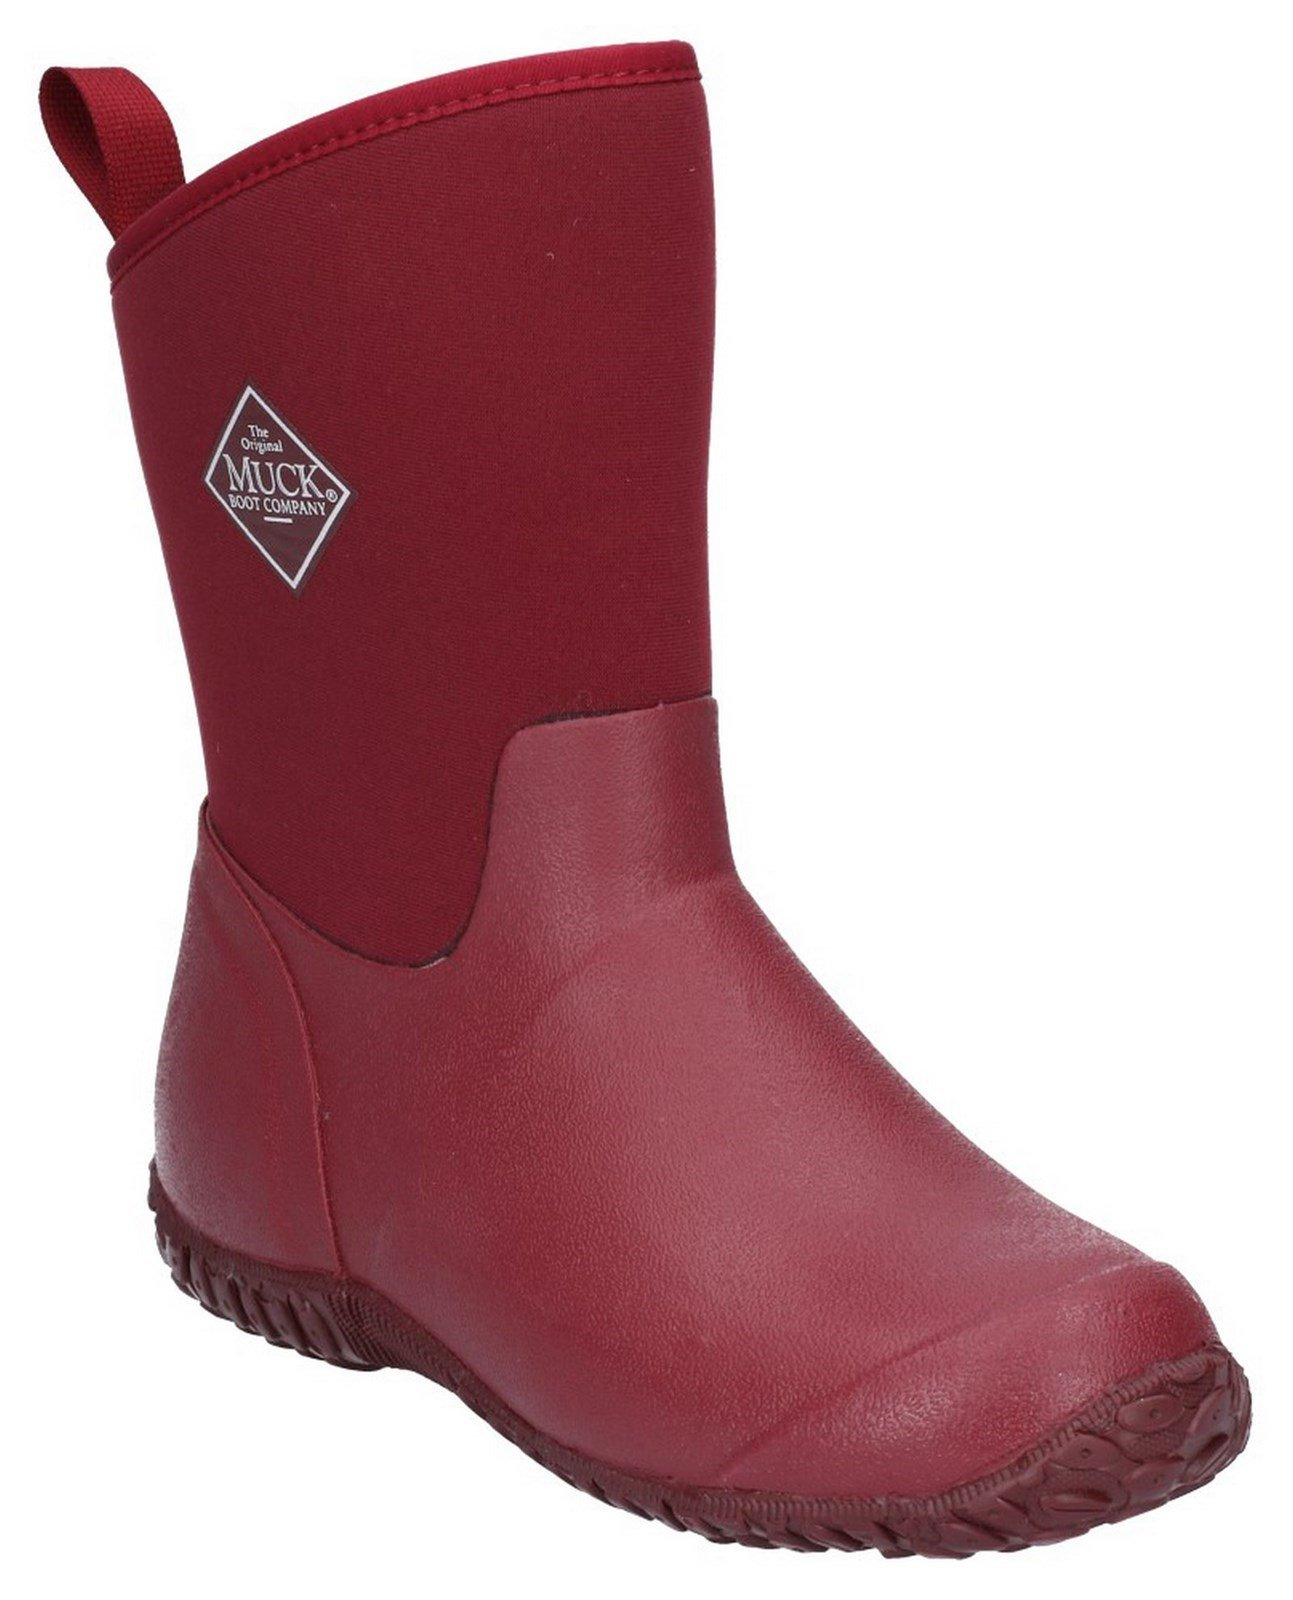 Muck Boots Unisex Muckster II Slip On Short Boot Various Colours 28899 - Red 3